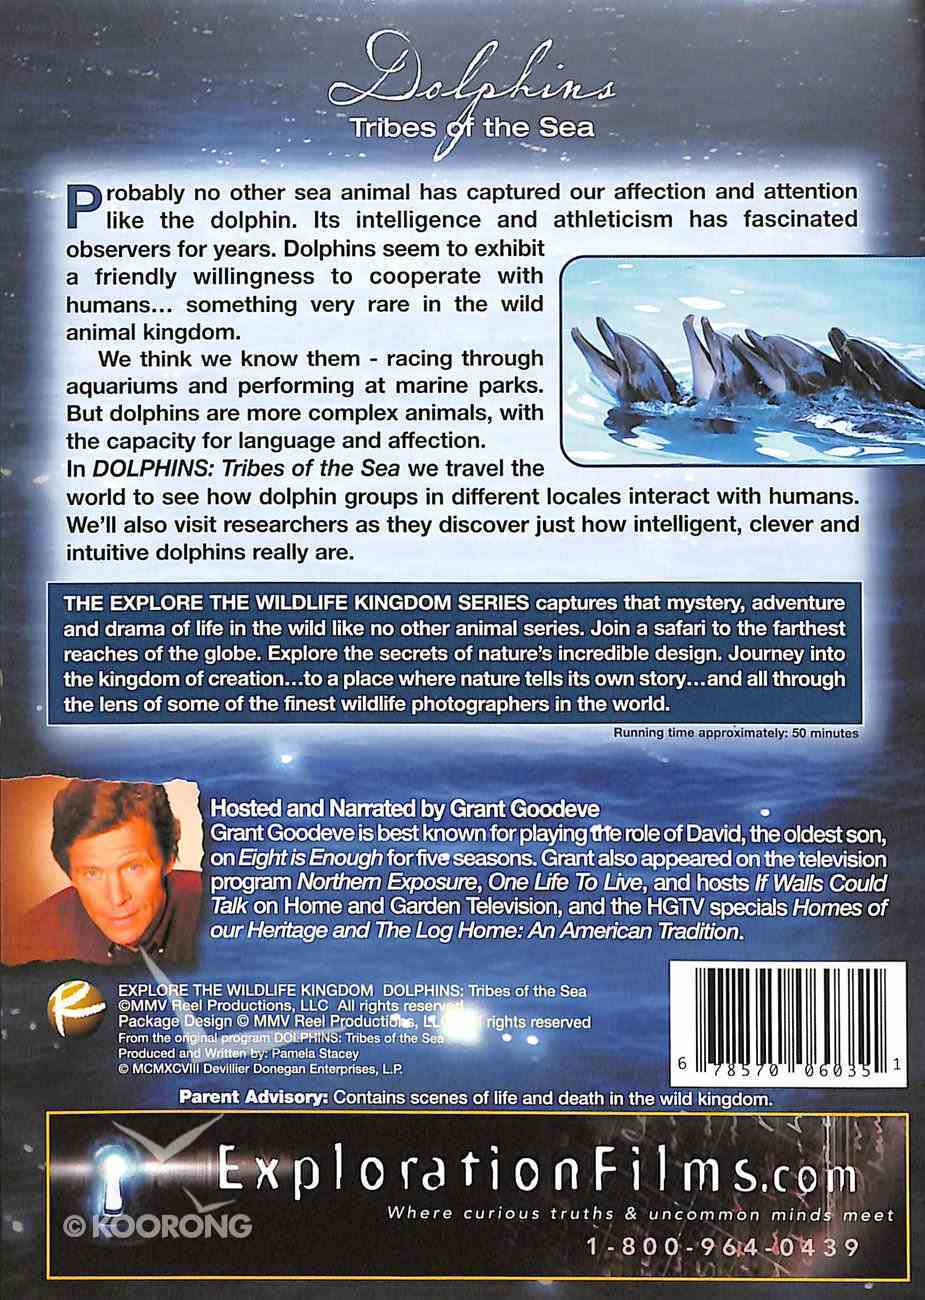 Etwkd: Dolphins - Tribes of the Sea DVD